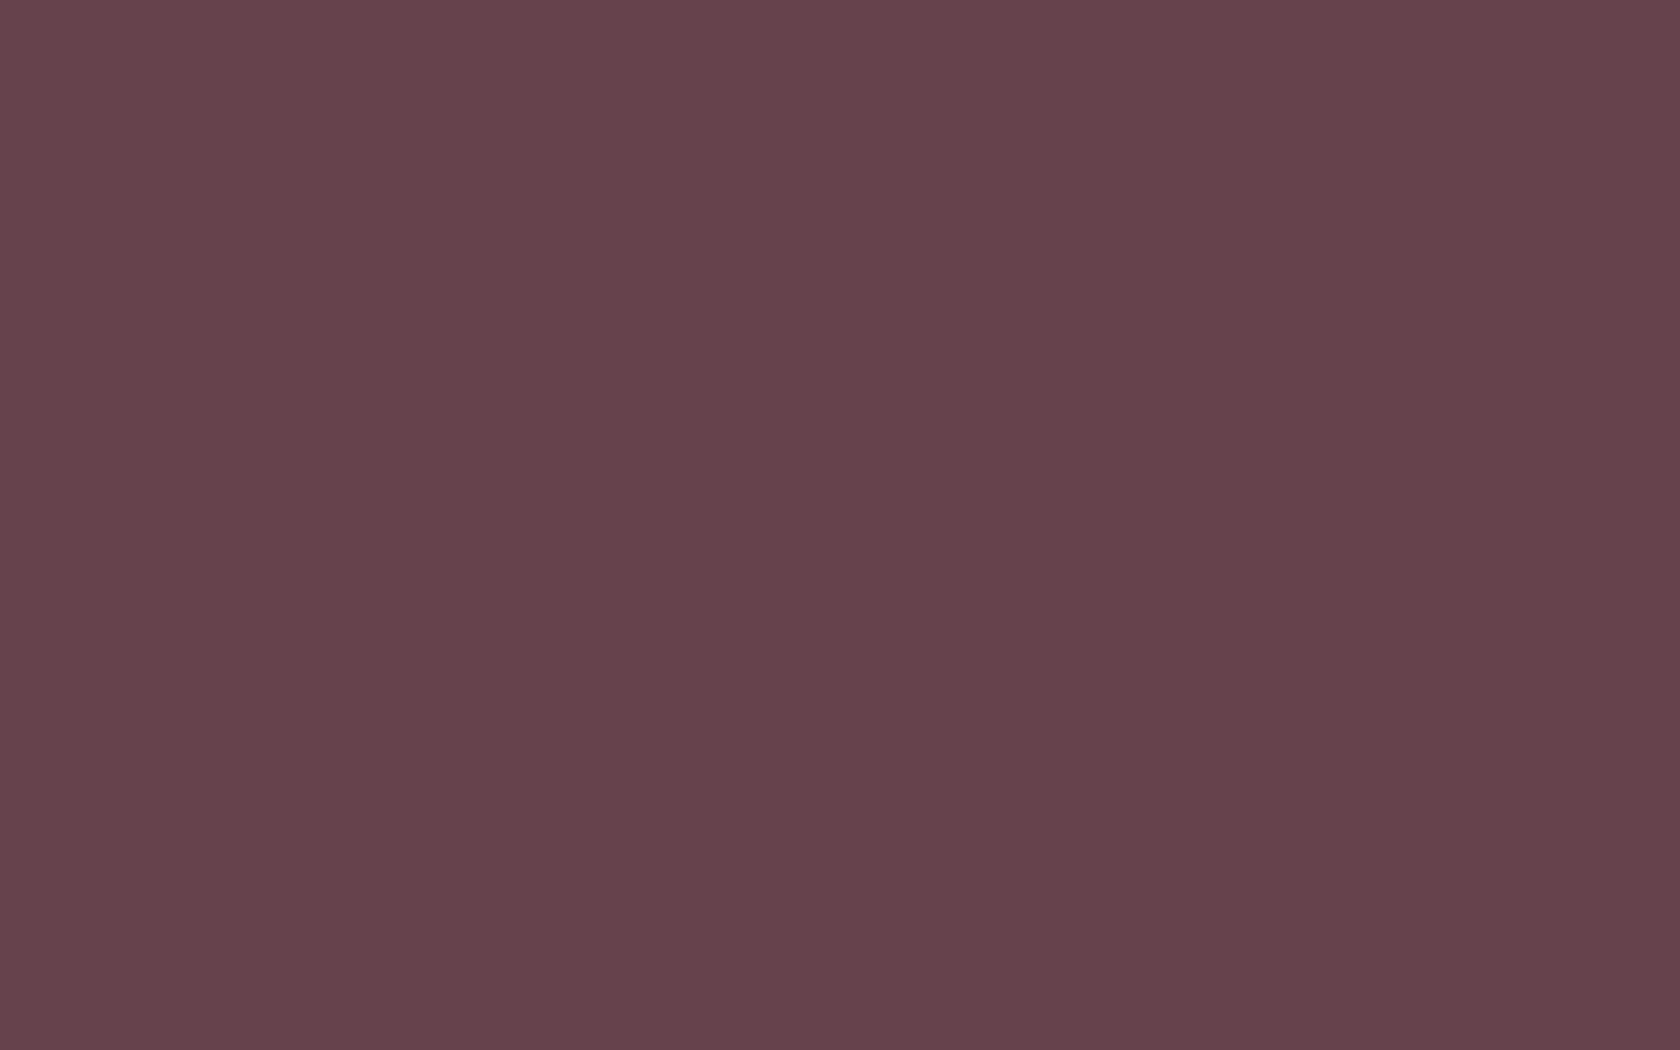 1680x1050 Deep Tuscan Red Solid Color Background